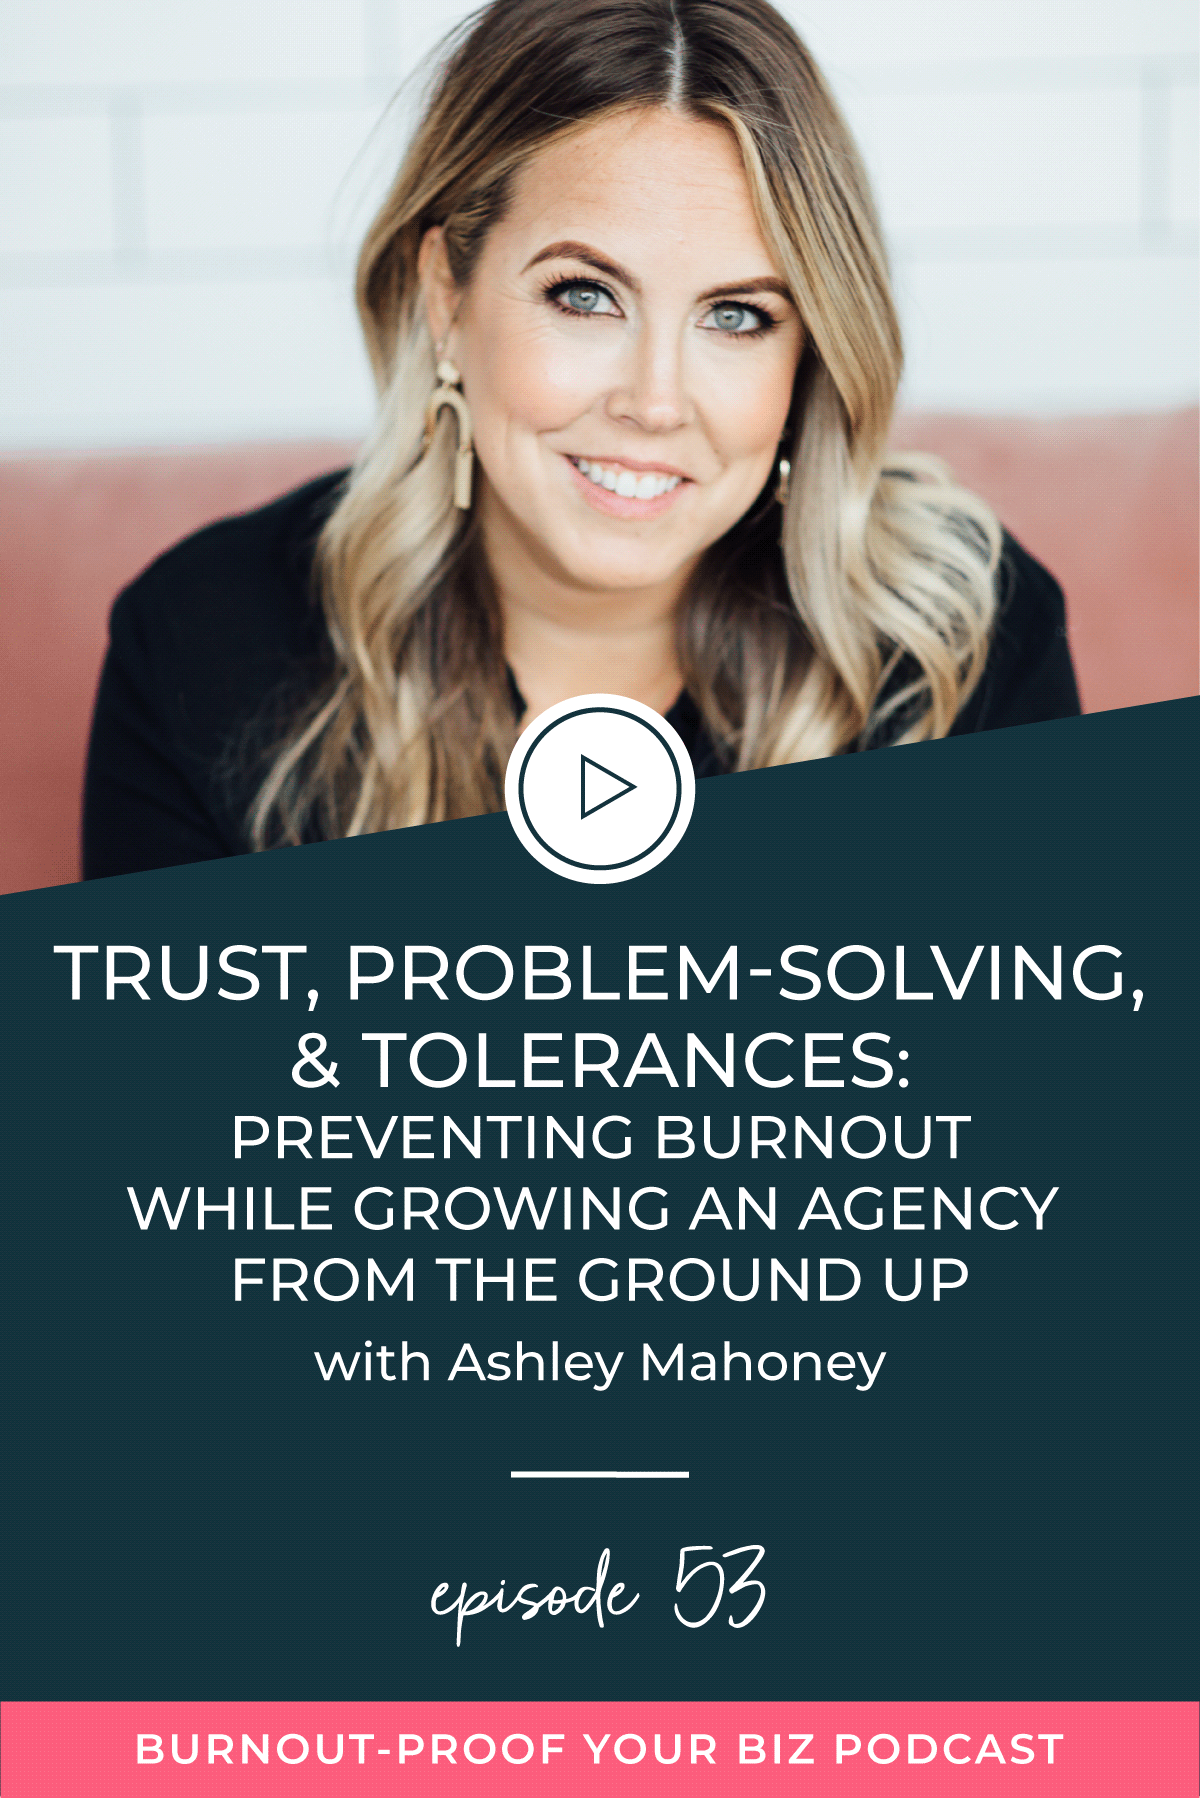 Burnout-Proof Your Biz Podcast with Chelsea B Foster | Episode 055 - Trust, Problem-Solving, & Tolerances: Preventing Burnout While Growing an Agency from the Ground Up with Ashley Mahoney of Hello Big Idea | Learn how to run your biz and live your dream life on your own terms without the fear of burnout. |||  BUSINESS COACH | WORKFLOW & PRODUCTIVITY SPECIALIST | SYSTEMS & ORGANIZATION SPECIALIST FOR COACHES | ADD MORE FREEDOM TO YOUR LIFE | BUSINESS COACH FOR BLOGGERS | PREVENTING BURNOUT | GROWING AN AGENCY | SOLOPRENEUR VS HIRING A TEAM | HIRING FREELANCERS | FREELANCER TO RUNNING AN AGENCY | BREAKING DOWN PROJECTS INTO BITE-SIZE CHUNKS | BEING A PROBLEM SOLVER | BEING GROWTH-ORIENTED | LIST OF TOLERANCES